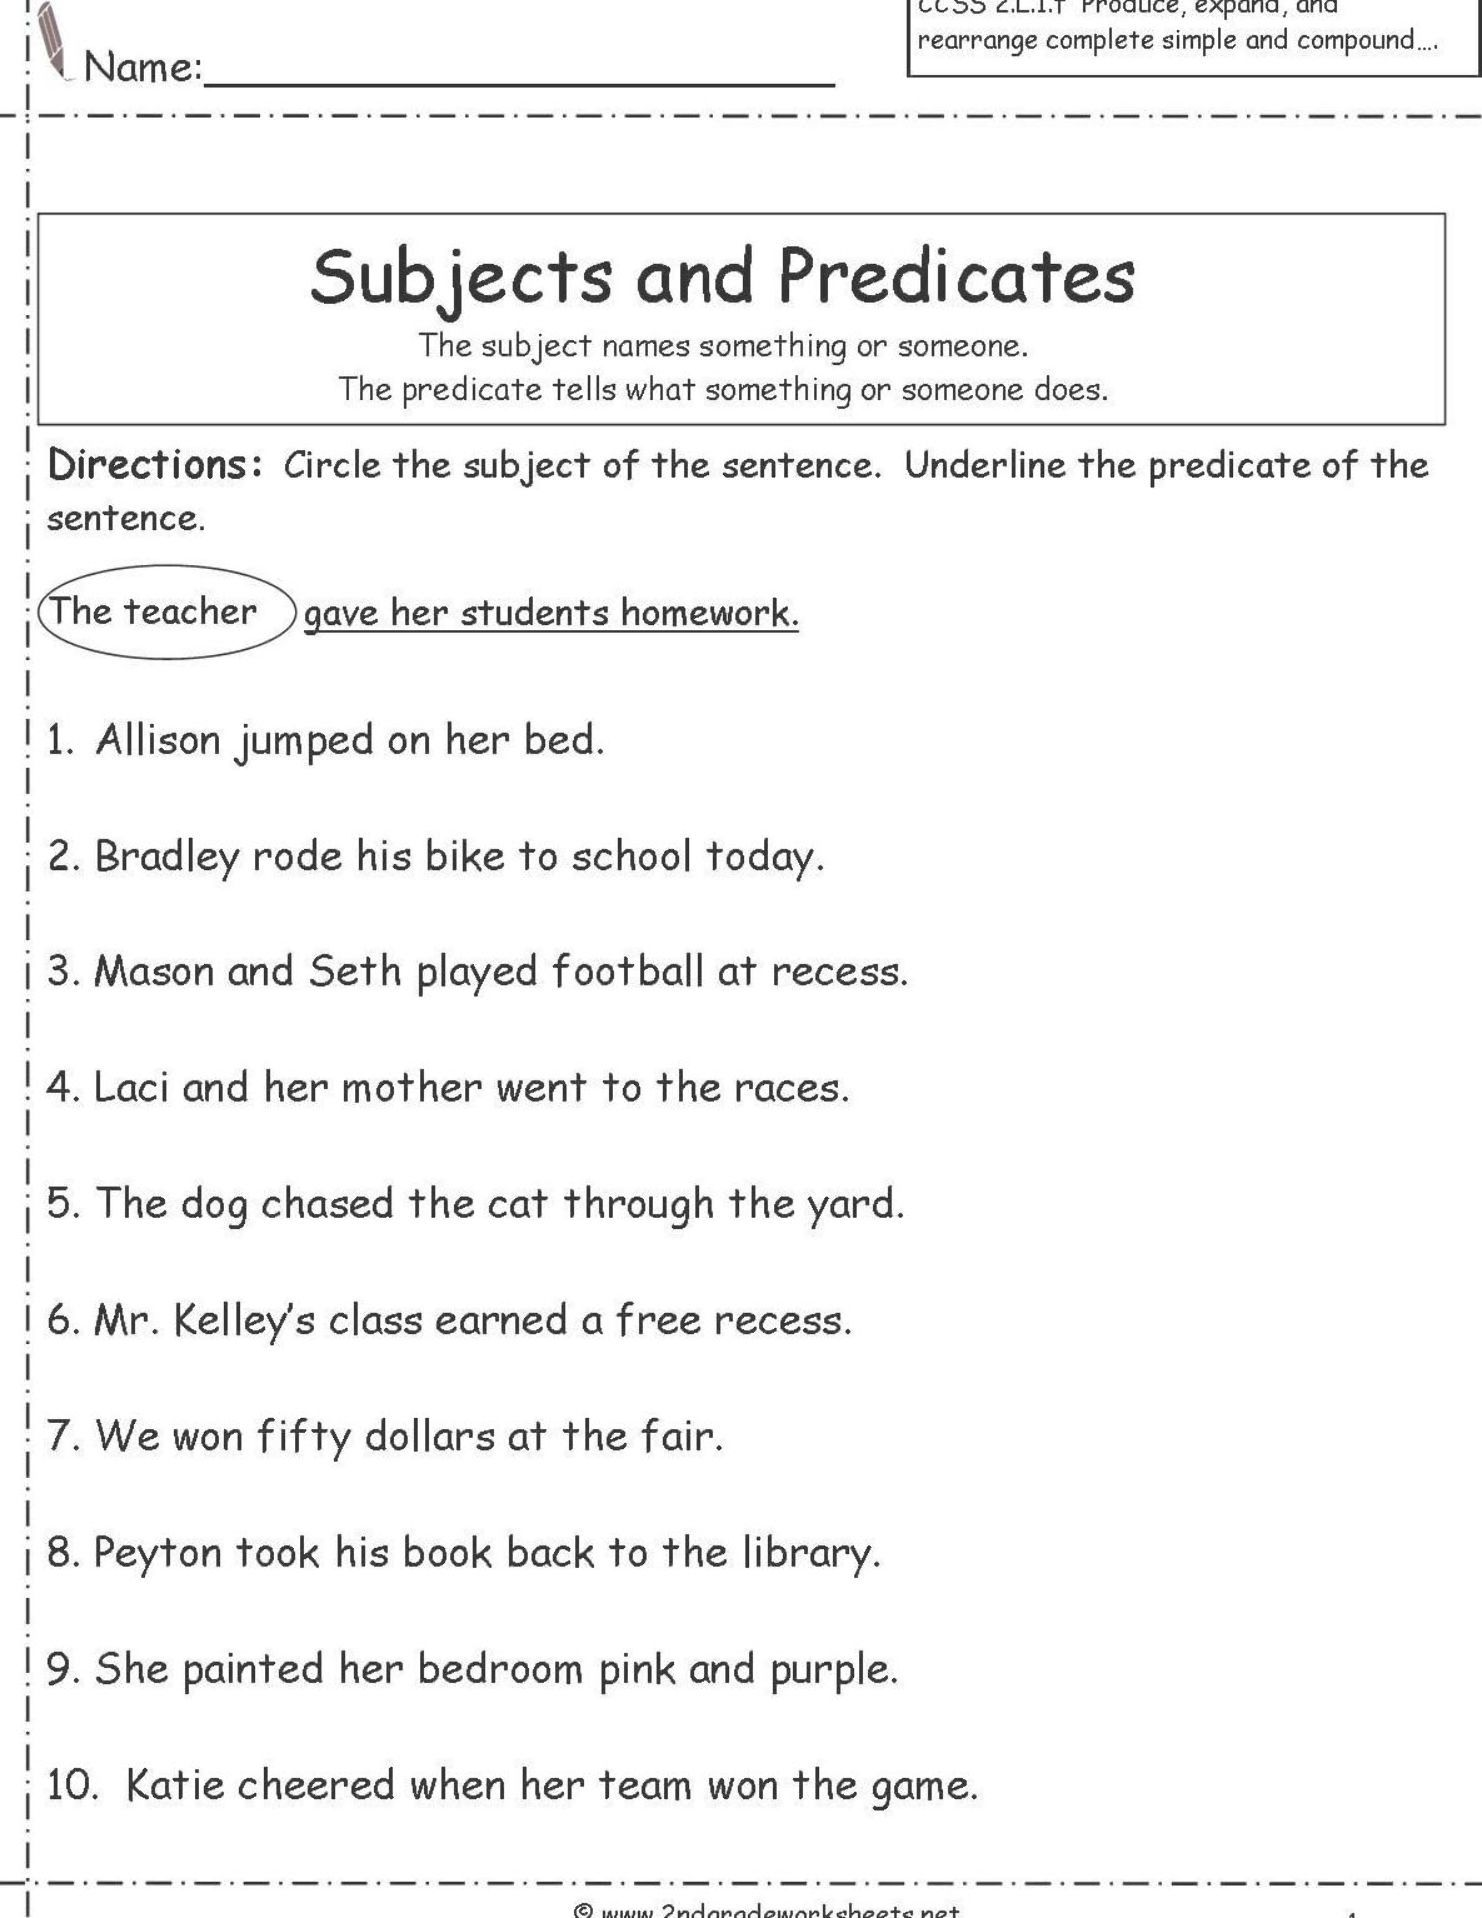 Subject And Predicate Worksheets For Second Grade Subject And Predicate Worksheets Subject And Predicate Predicates